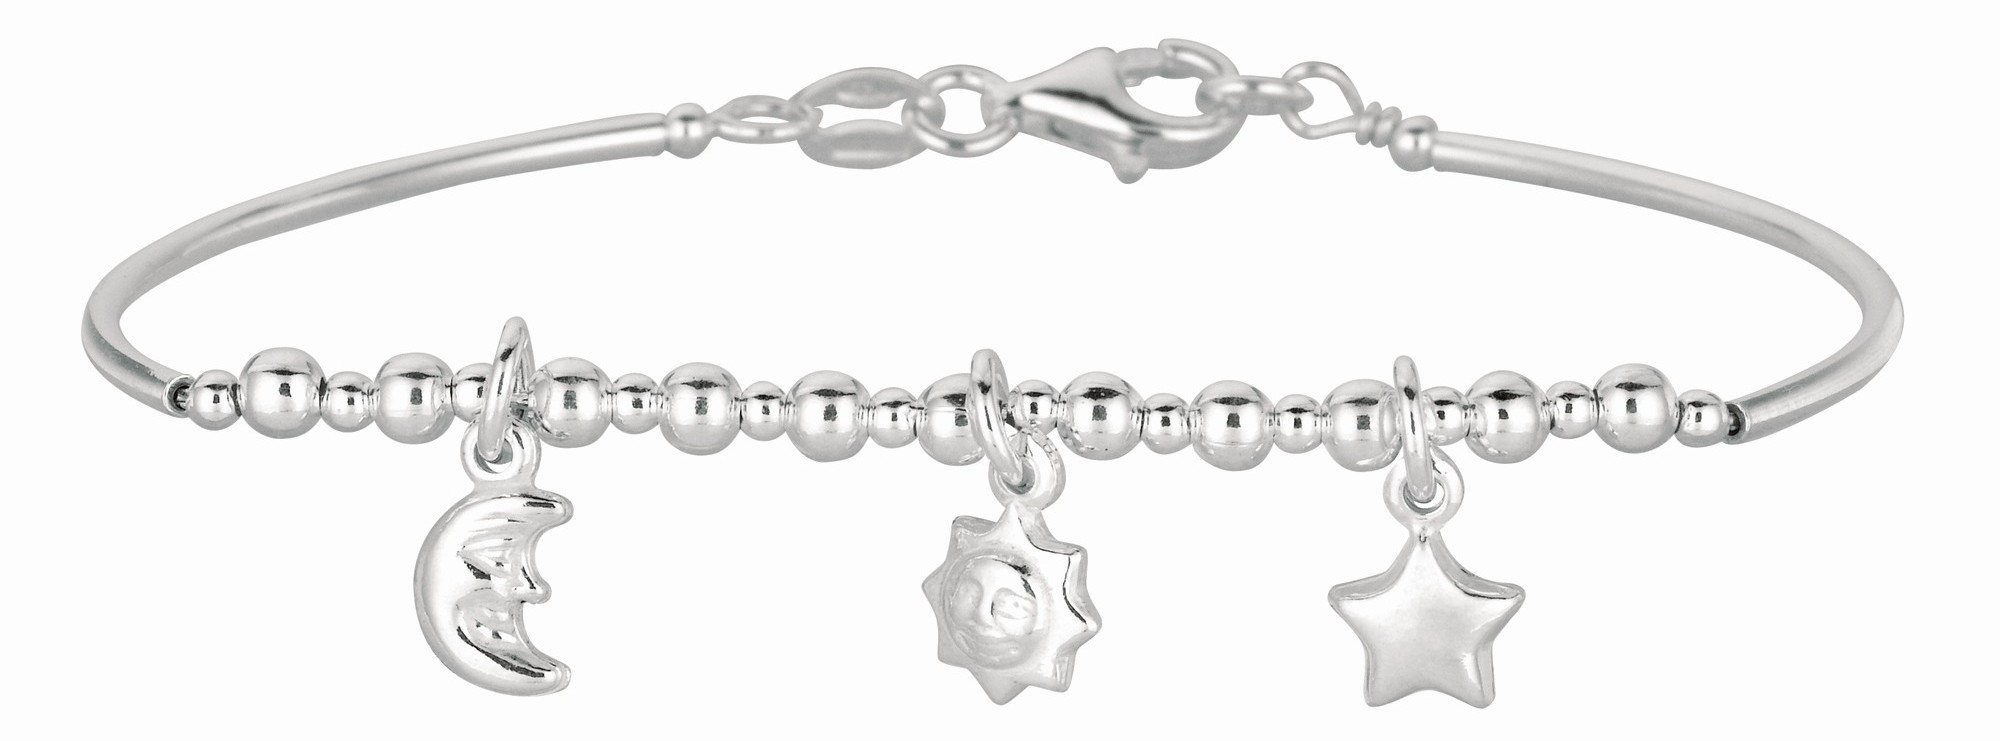 "5.5"" 925 Sterling Silver Rhodium Plated Shiny Curve Bar & Diamond Cut Bead Children Bracelet w/ Pear Shape Clasp & Moon & Star Charm"